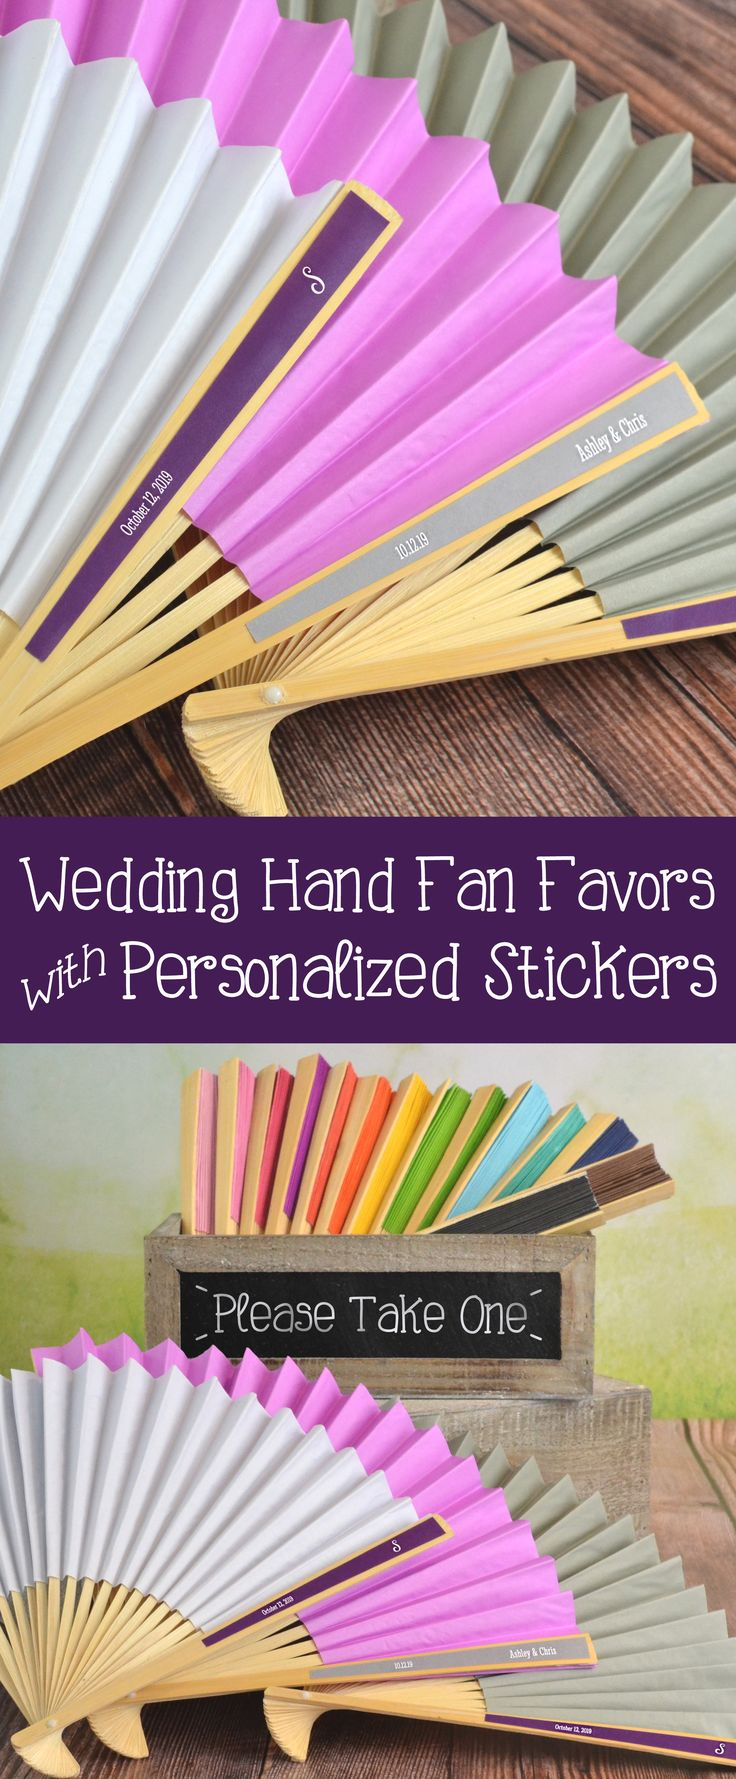 Set up a cooling station at your summer wedding ceremony and reception with bottled water and folding paper hand fans personalized with the bride and groom's name and wedding date. Guests can pick them up as they enter the church or reception hall to help keep them cool as they celebrate your wedding day. These personalized hand fans can be ordered at http://myweddingreceptionideas.com/colored-paper-hand-fans-colorful-labels.asp